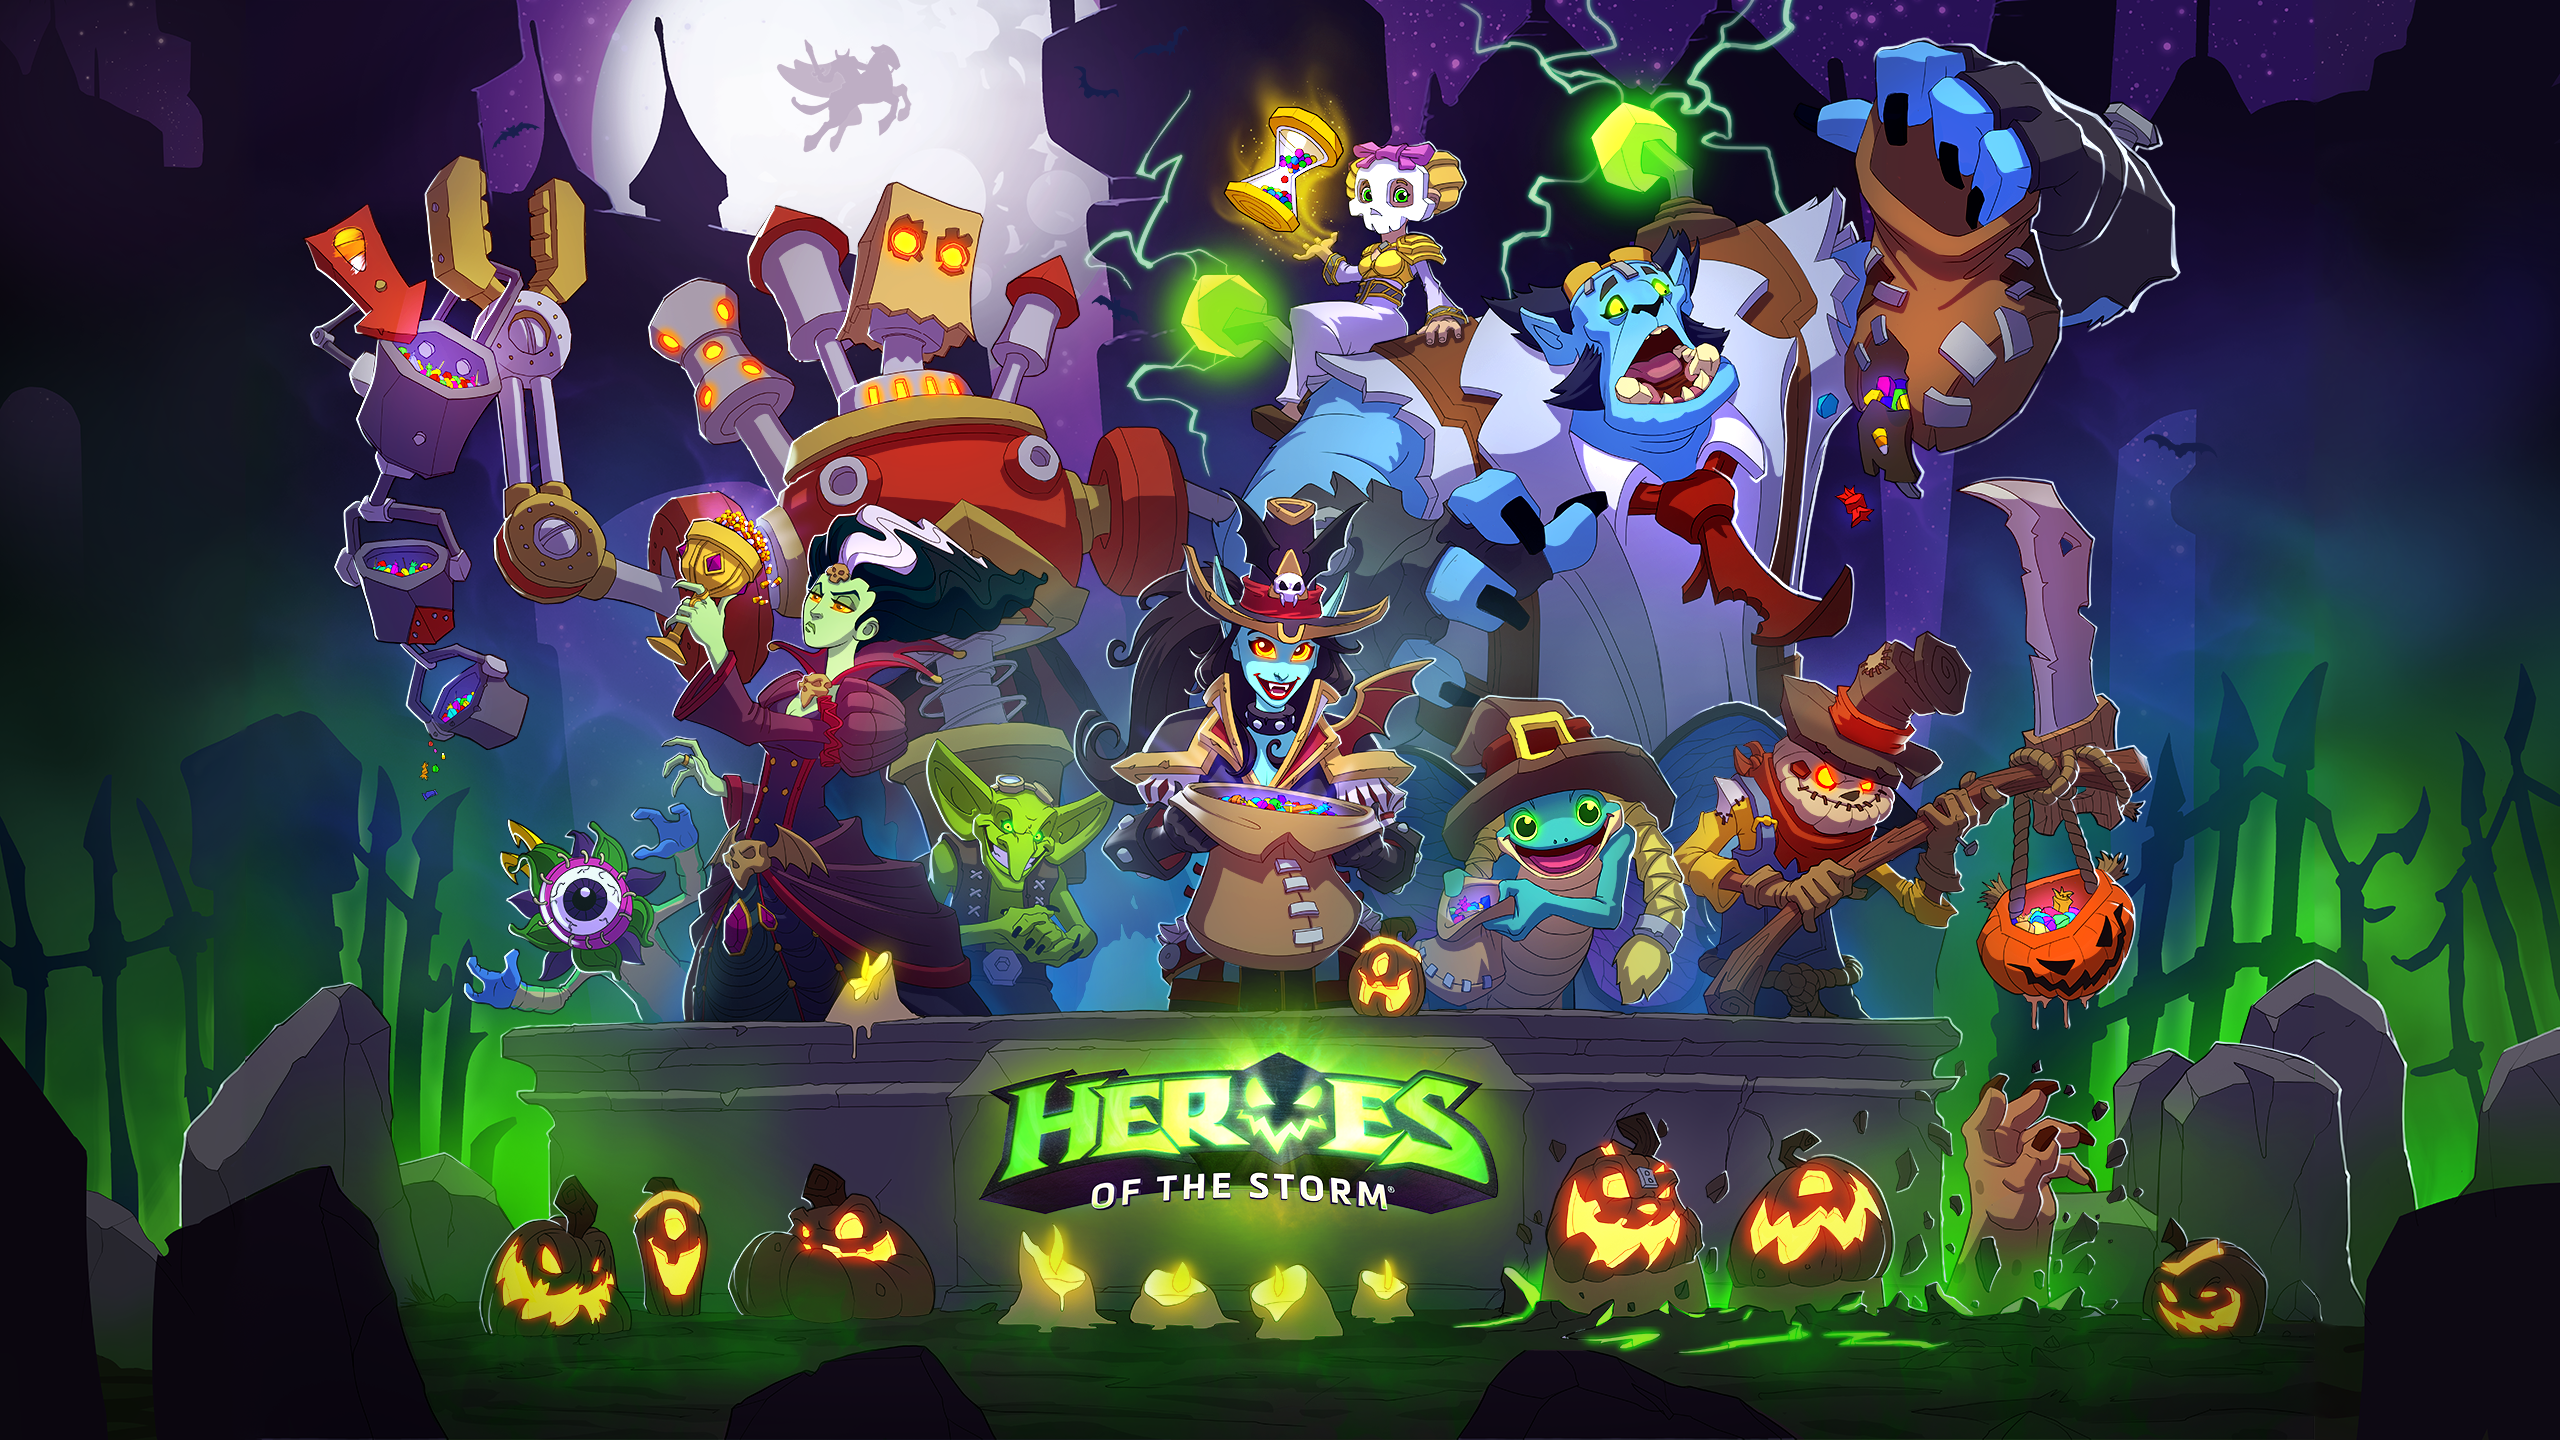 Heroes Of The Storm Wallpaper Hd Posted By Ethan Mercado